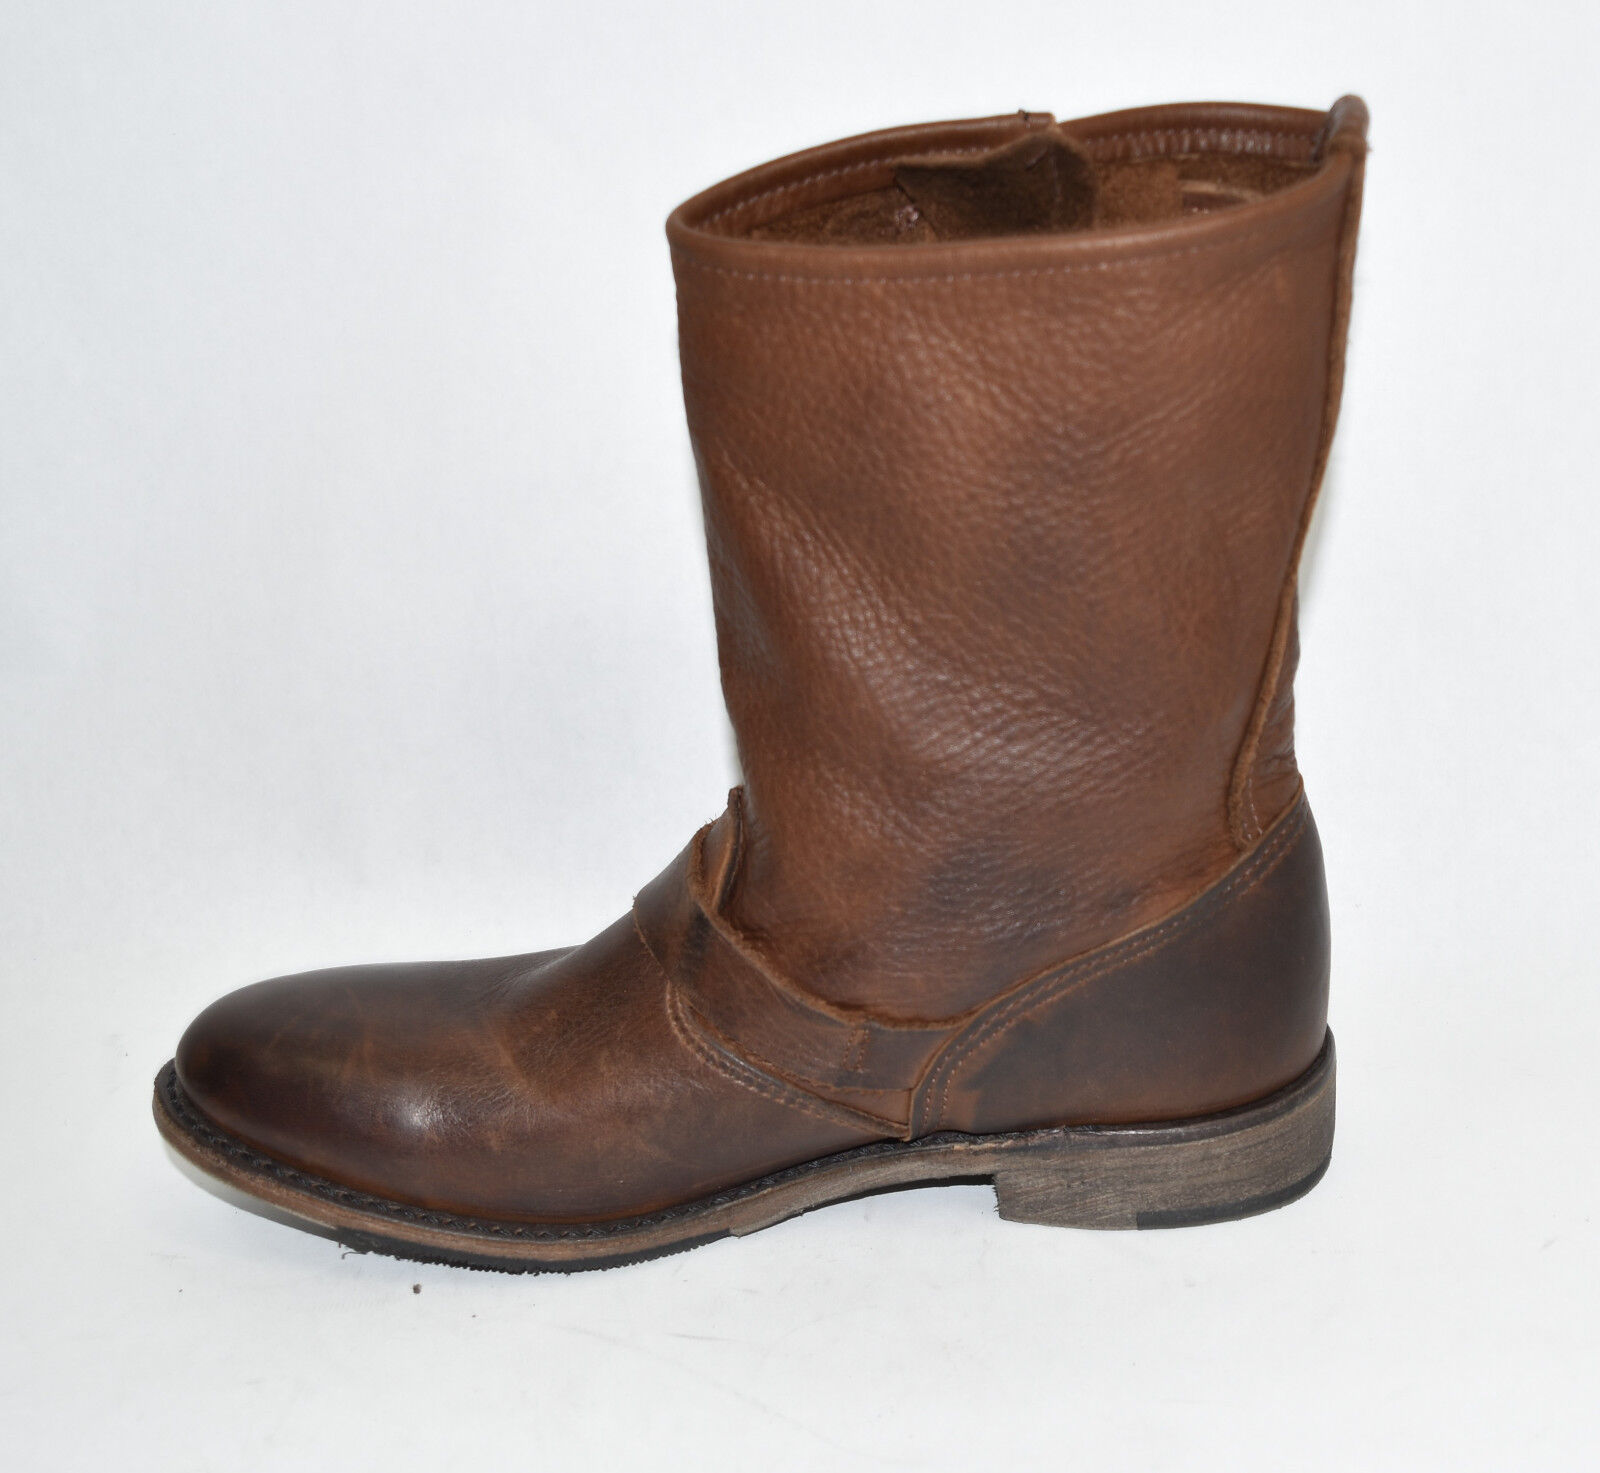 New Engineer Vintage Boot Collection 'Veronica